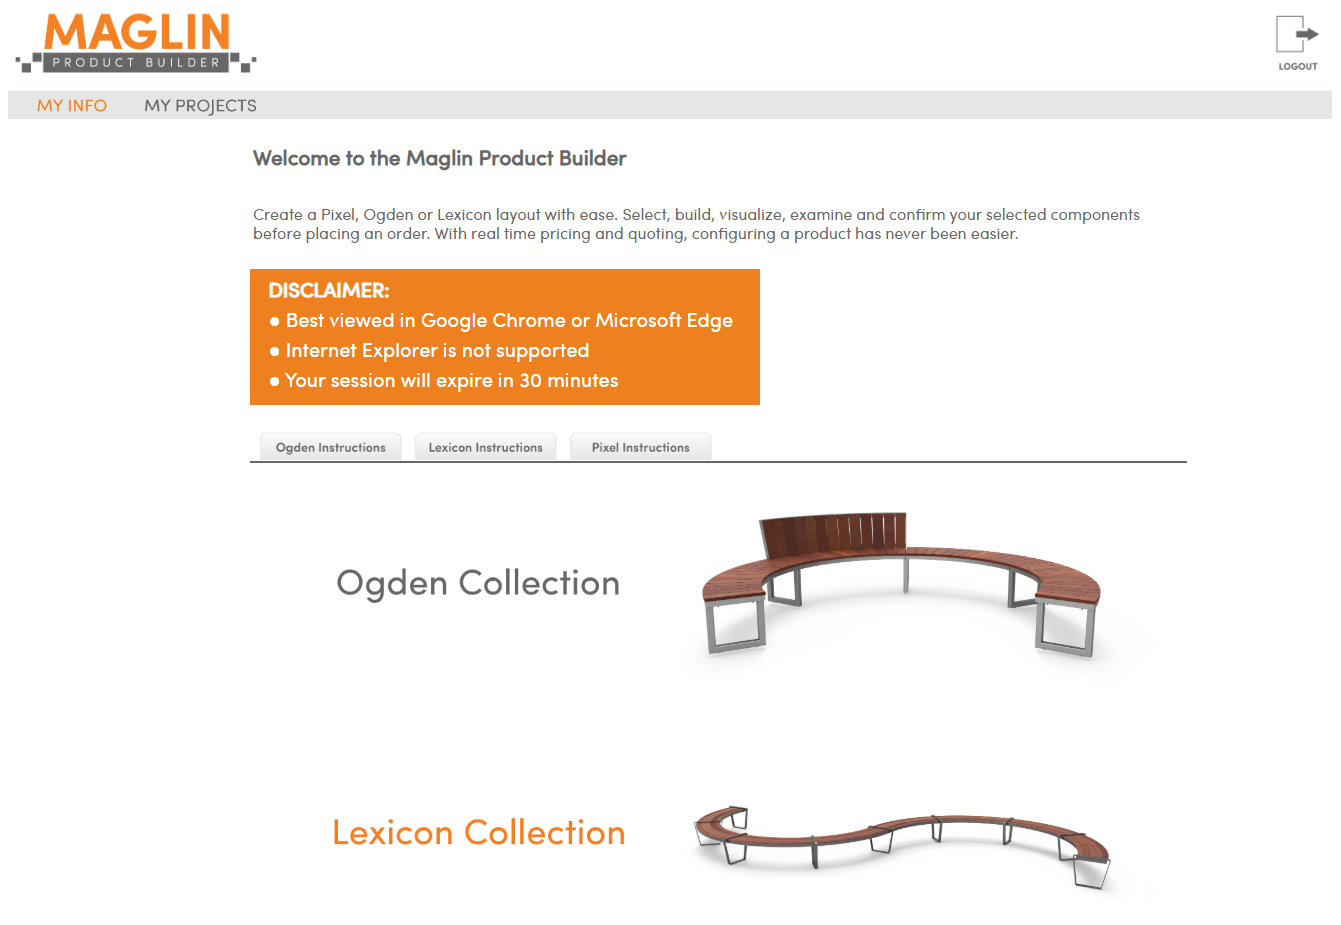 Maglin Product Builder